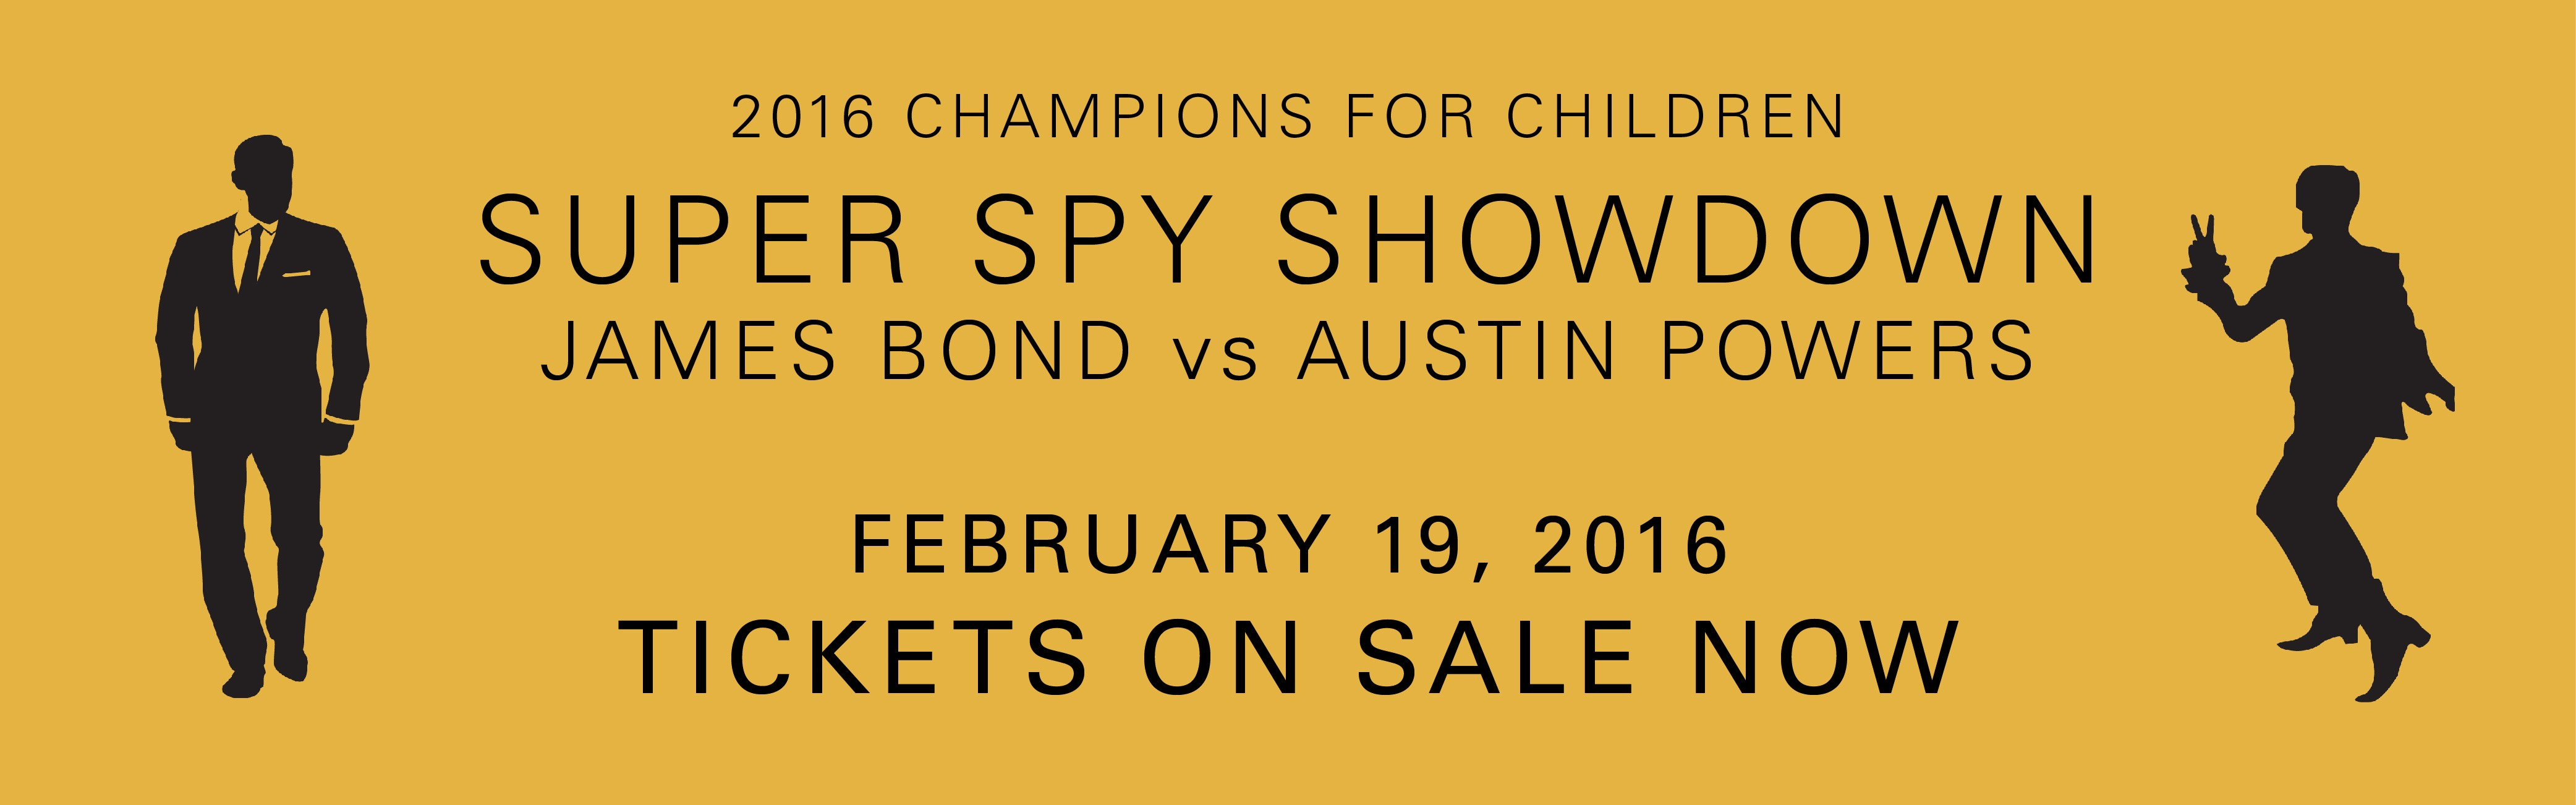 Super Spy Showdown on Feb 19 2016